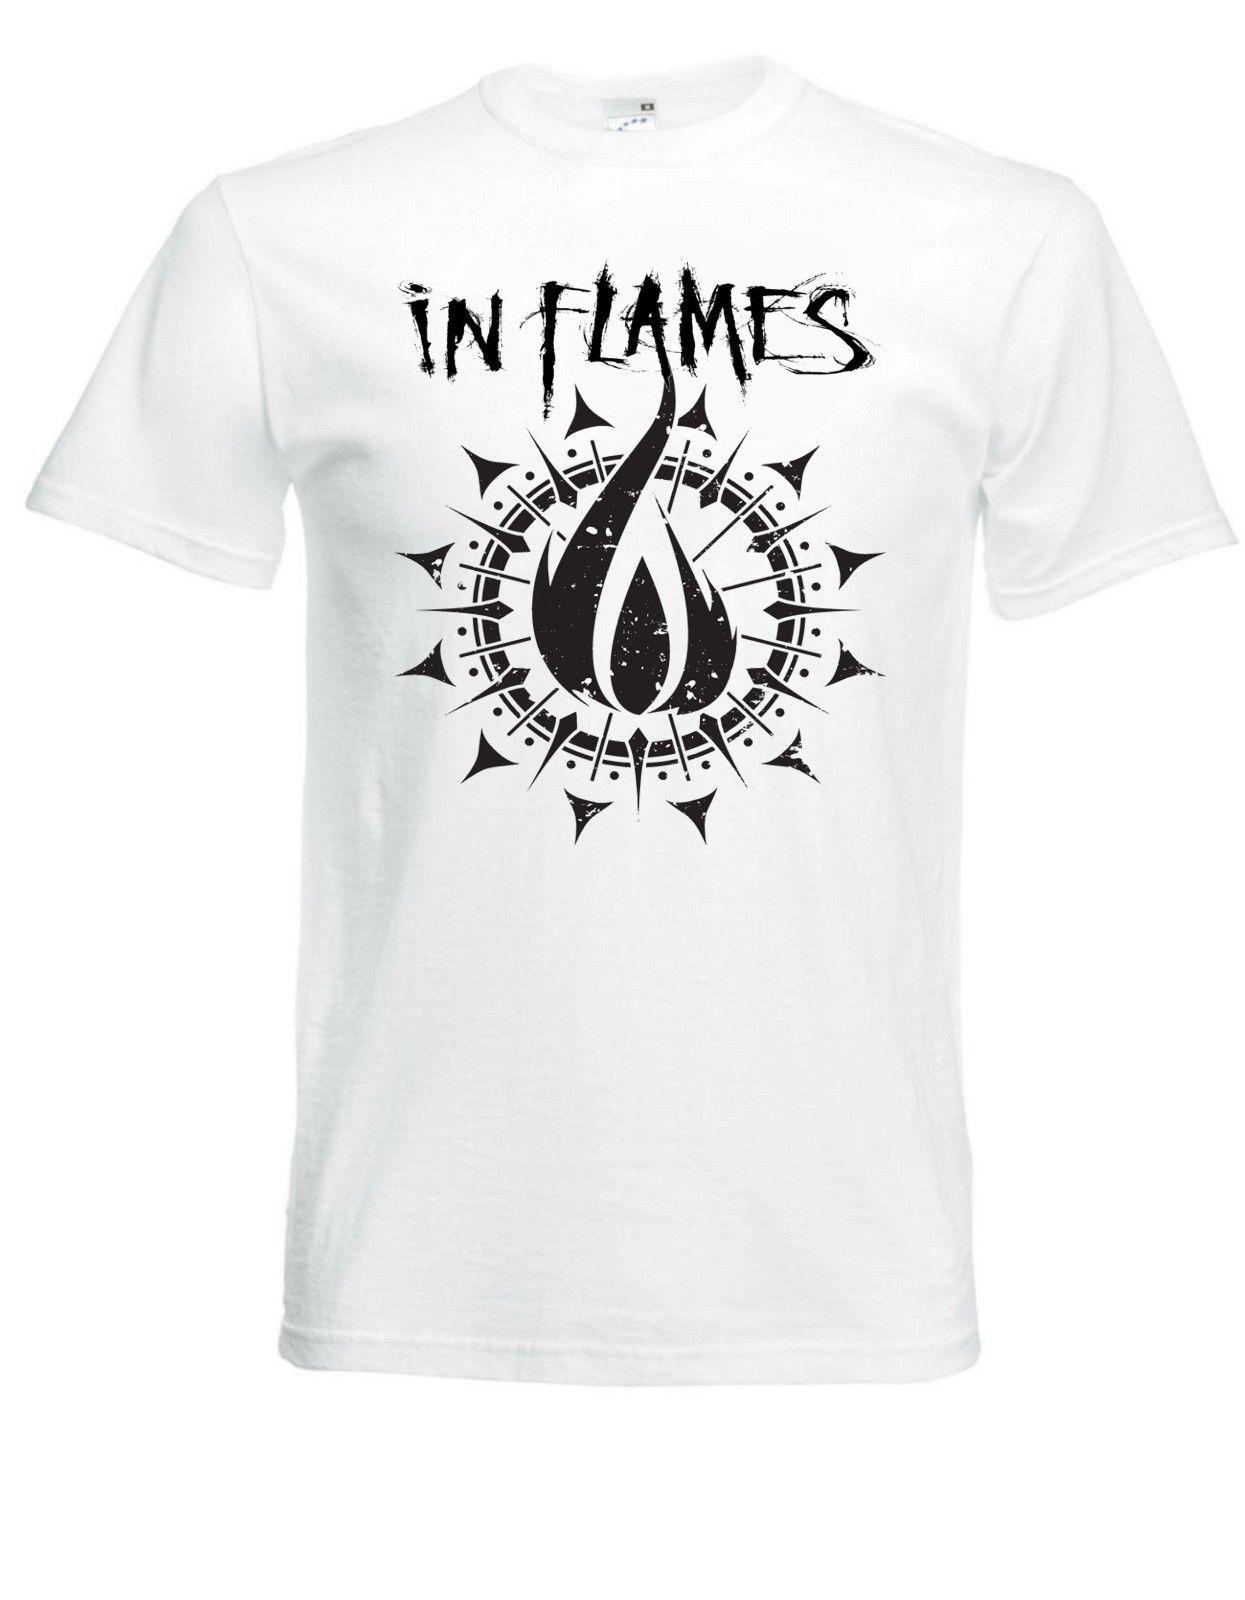 d1f79708937 In Flames Logo White Herren T-shirt Men Rock Band Tee Shirt Online with   12.99 Piece on Beidhgate07 s Store